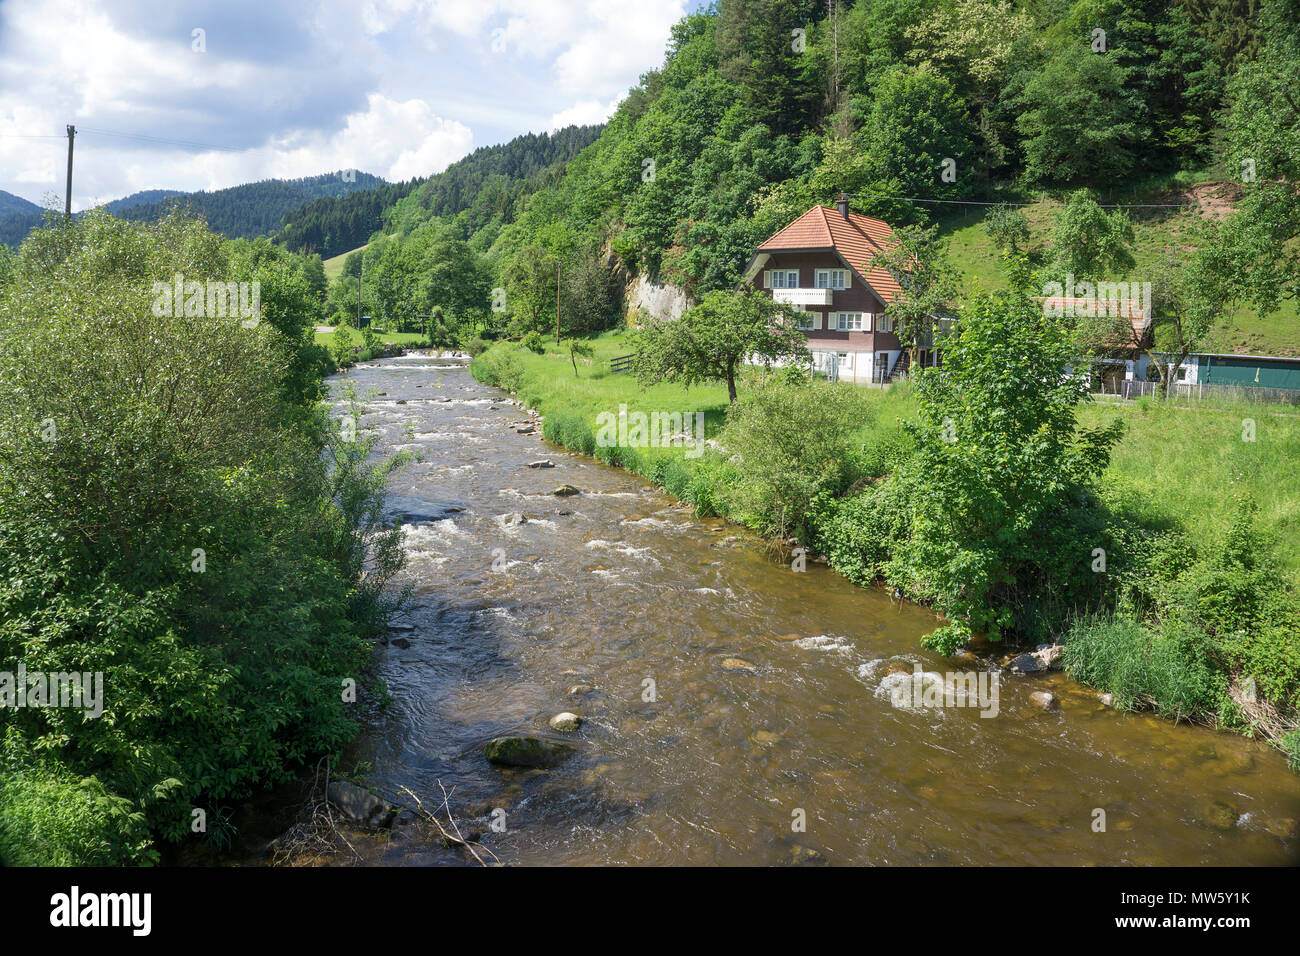 Black forest houses at Gutach river, village Gutach, Black Forest, Baden-Wuerttemberg, Germany, Europe - Stock Image